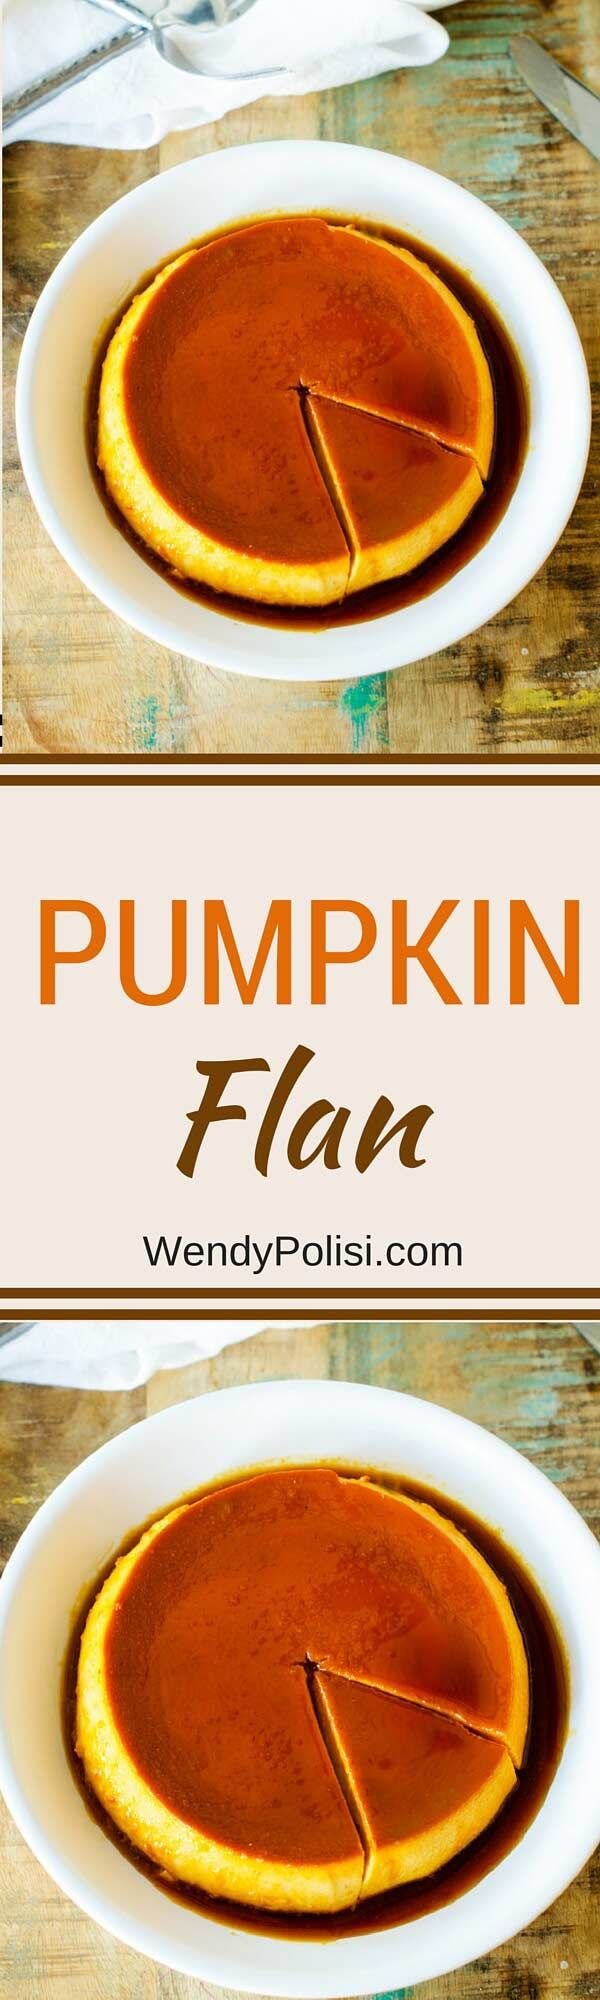 This Pumpkin Flan recipe is a unique twist on a favorite classic.  With just six ingredients, this pumpkin dessert recipe will make your holiday table shine. #holidaydesserts via @wendypolisi